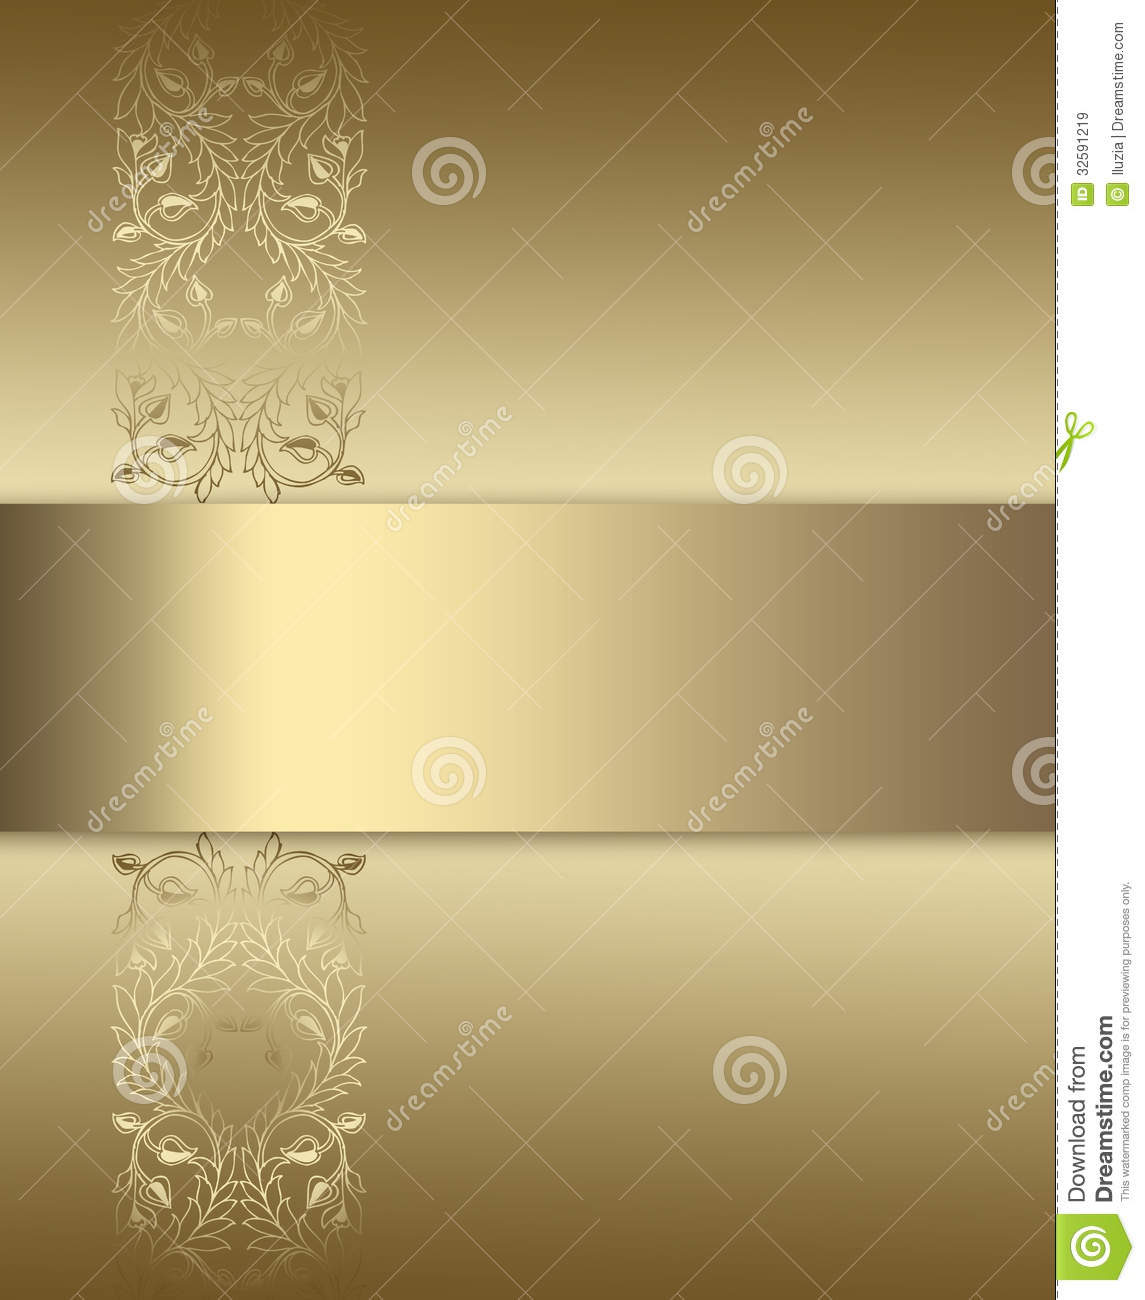 Royalty Free Stock Images Elegant Gold Brown Background Tape Design Layout Soft Vintage Grunge Texture Lighting Copy Space Title Text Ad Image32591219 on Victorian Ornamental Border Brown